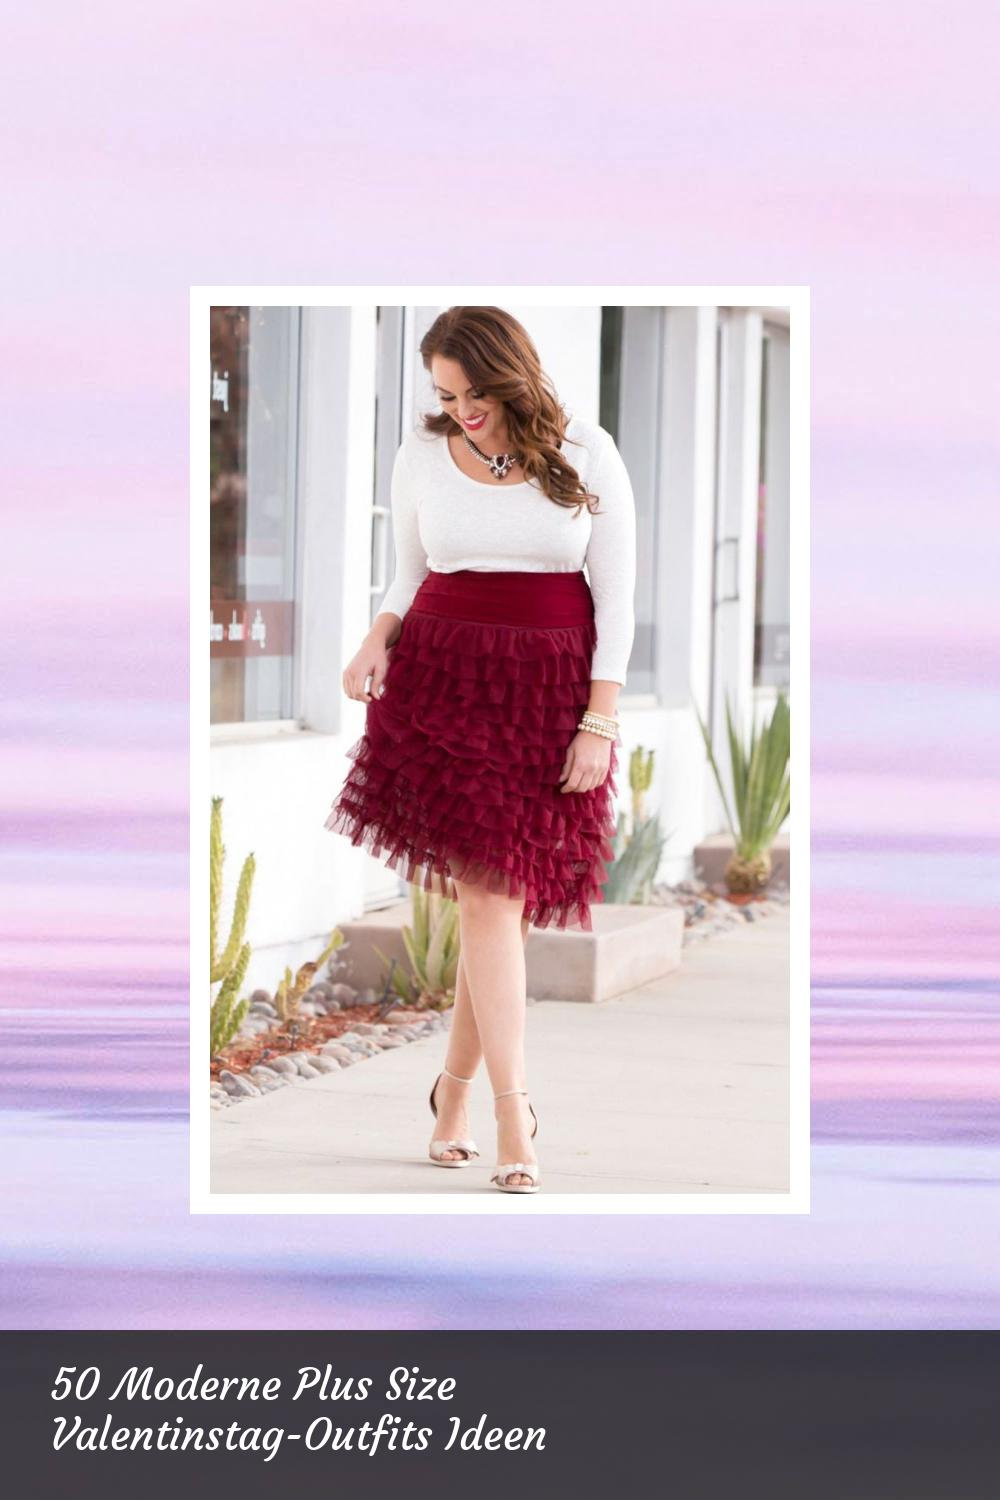 50 Moderne Plus Size Valentinstag-Outfits Ideen 42